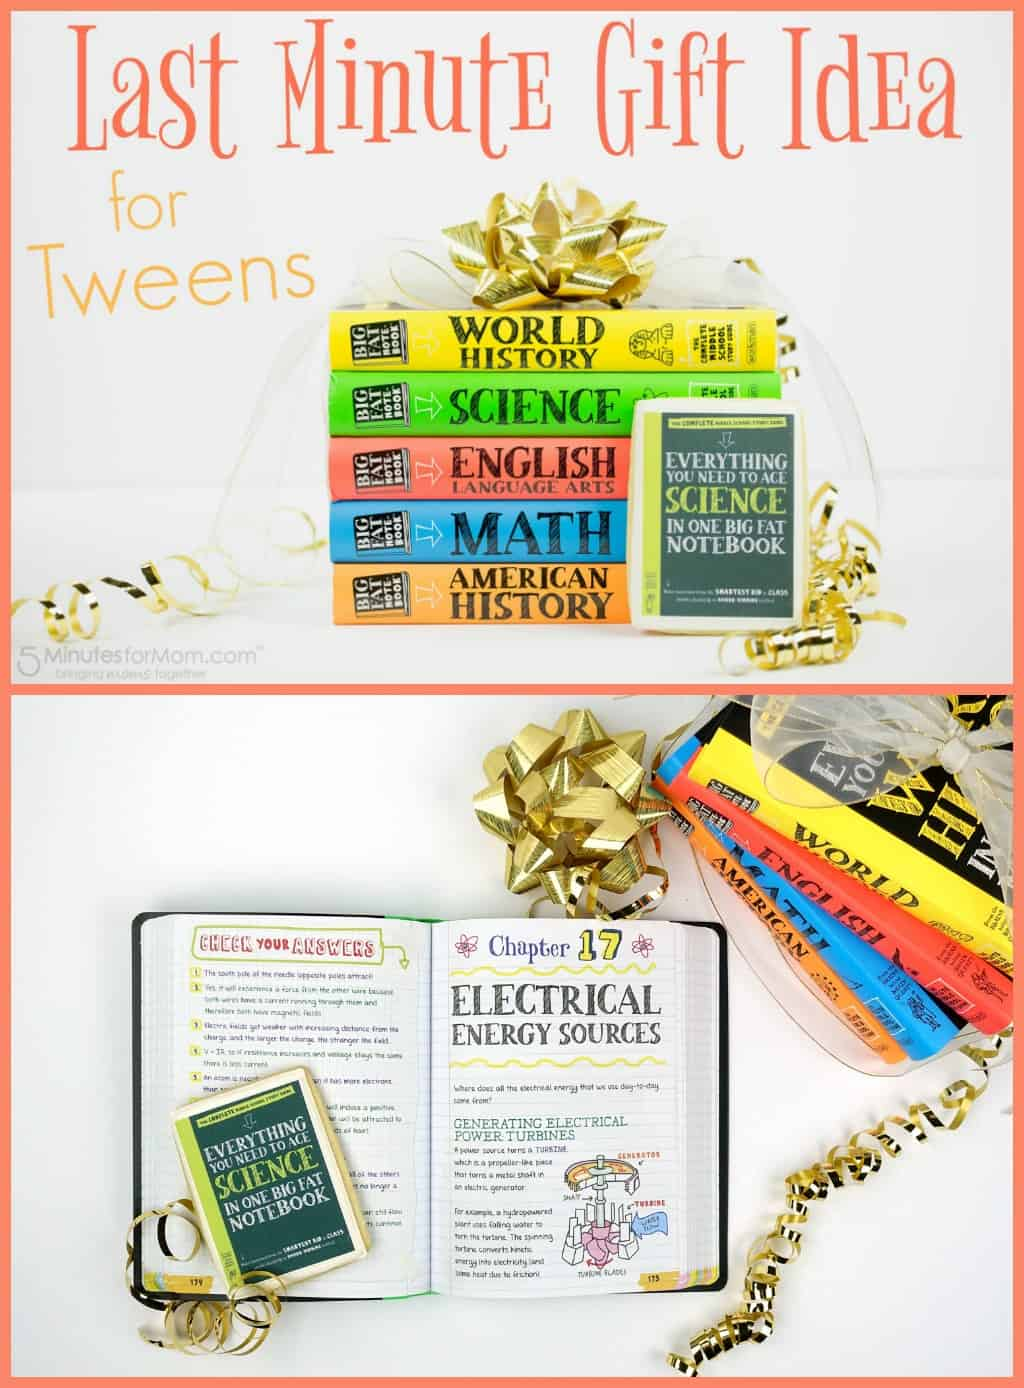 Last minute gift idea for Tweens